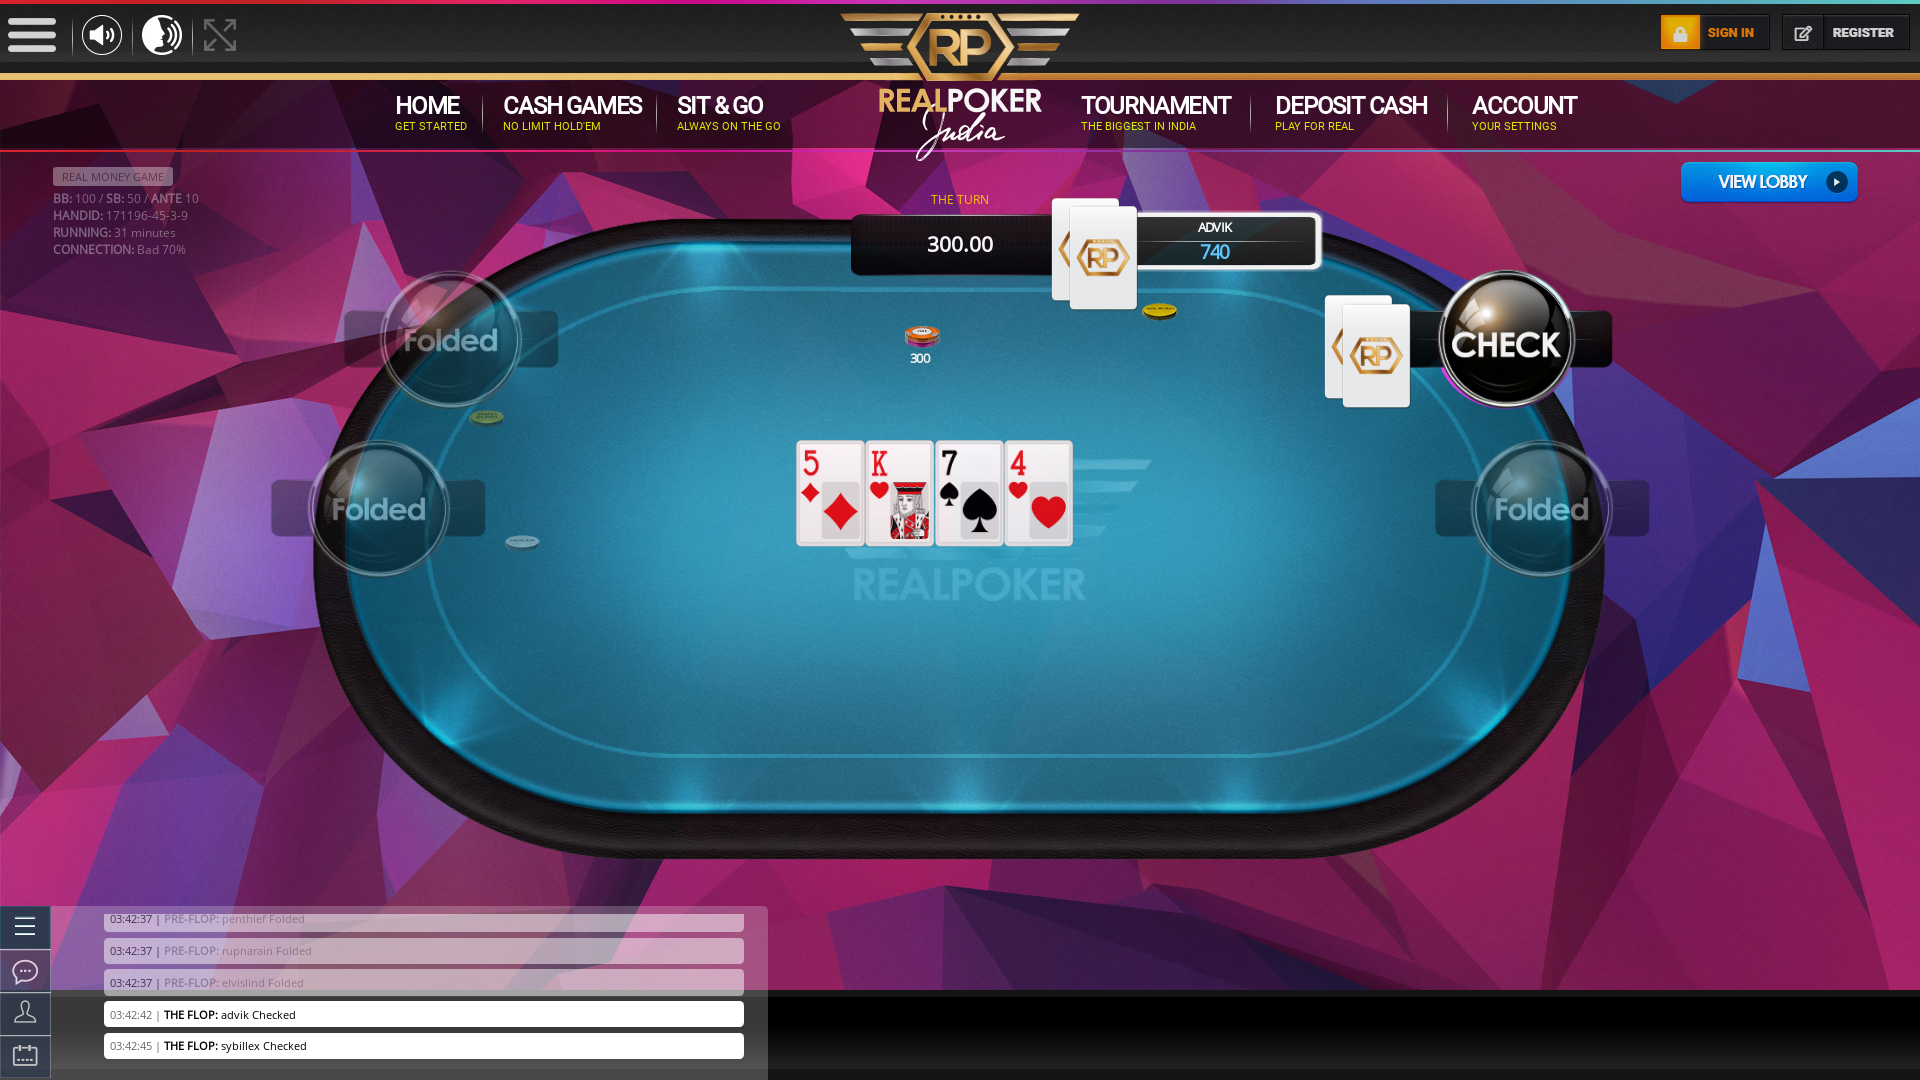 Real Indian poker on a 10 player table in the 3 game